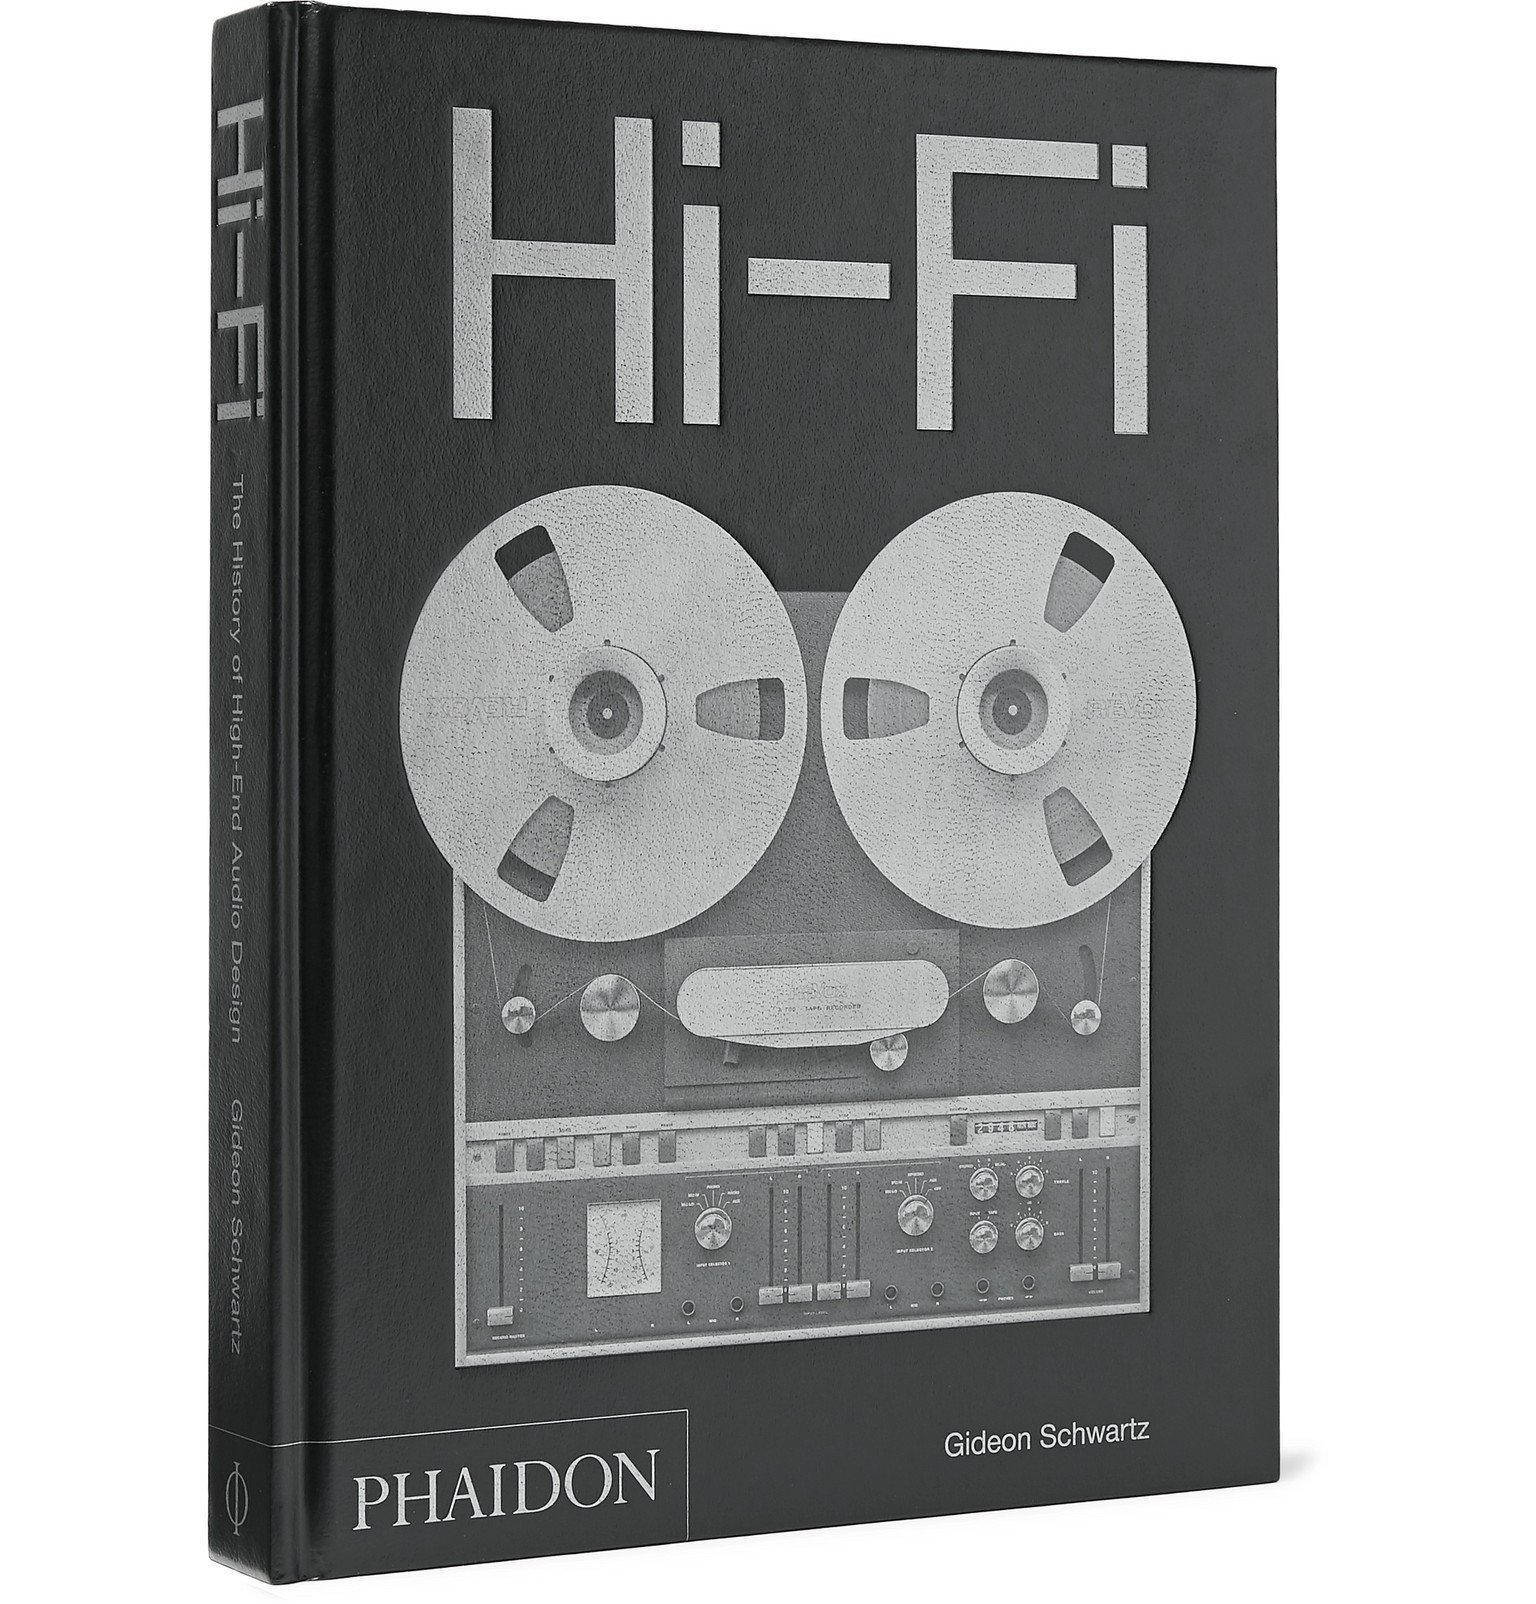 Photo: Phaidon - Hi-Fi The History of High-End Audio Design Hardcover Book - Black